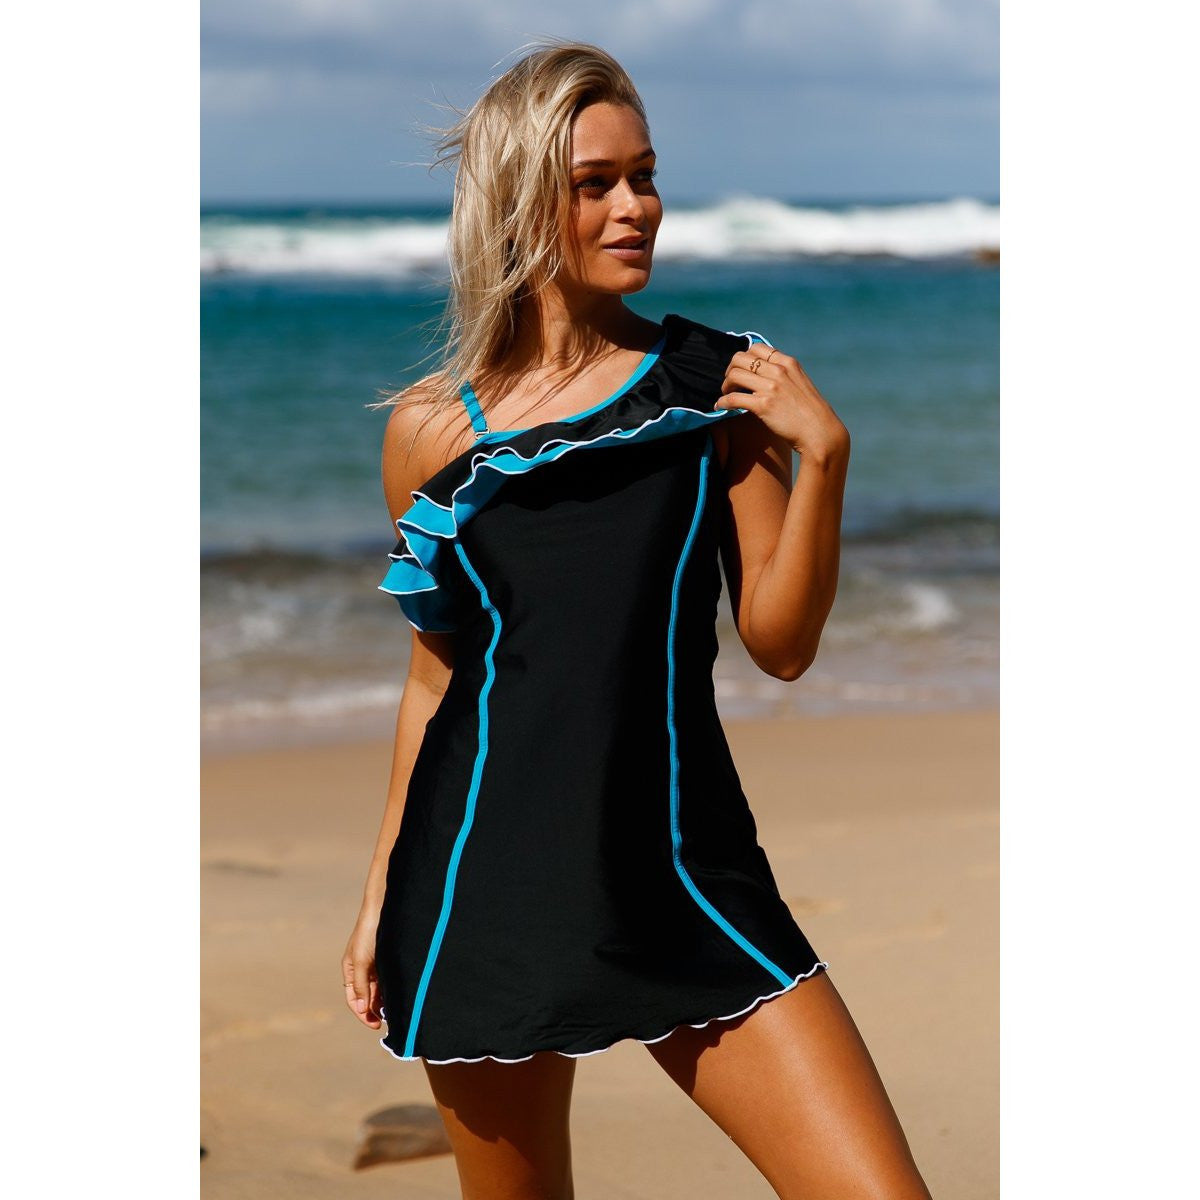 KELLIPS Black Ruffle Swim Dress With Shorts - KELLIPS